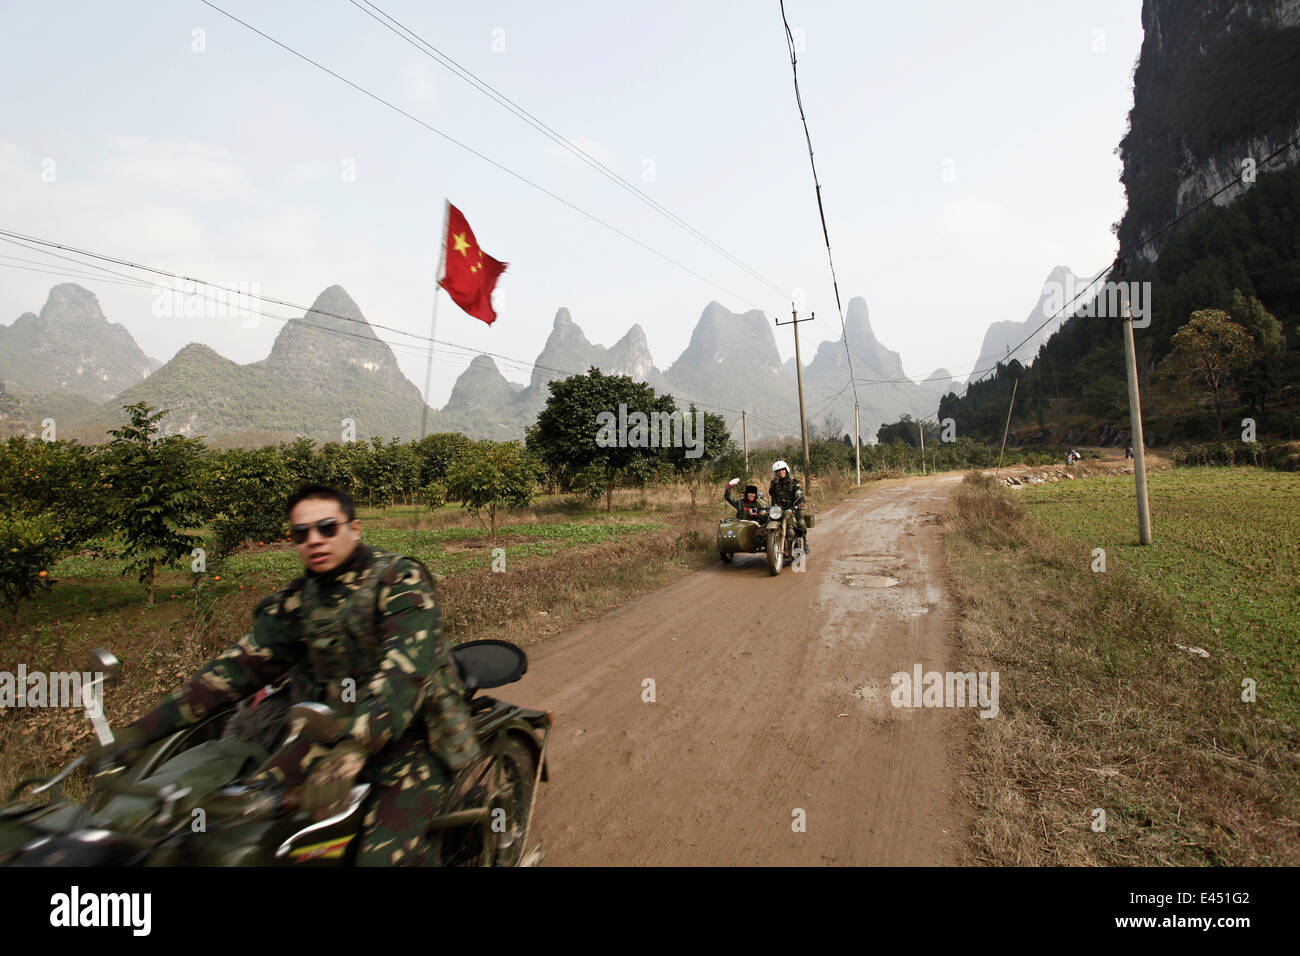 Motorcyclist in front of karst mountains in Yangshuo, China Stock Photo